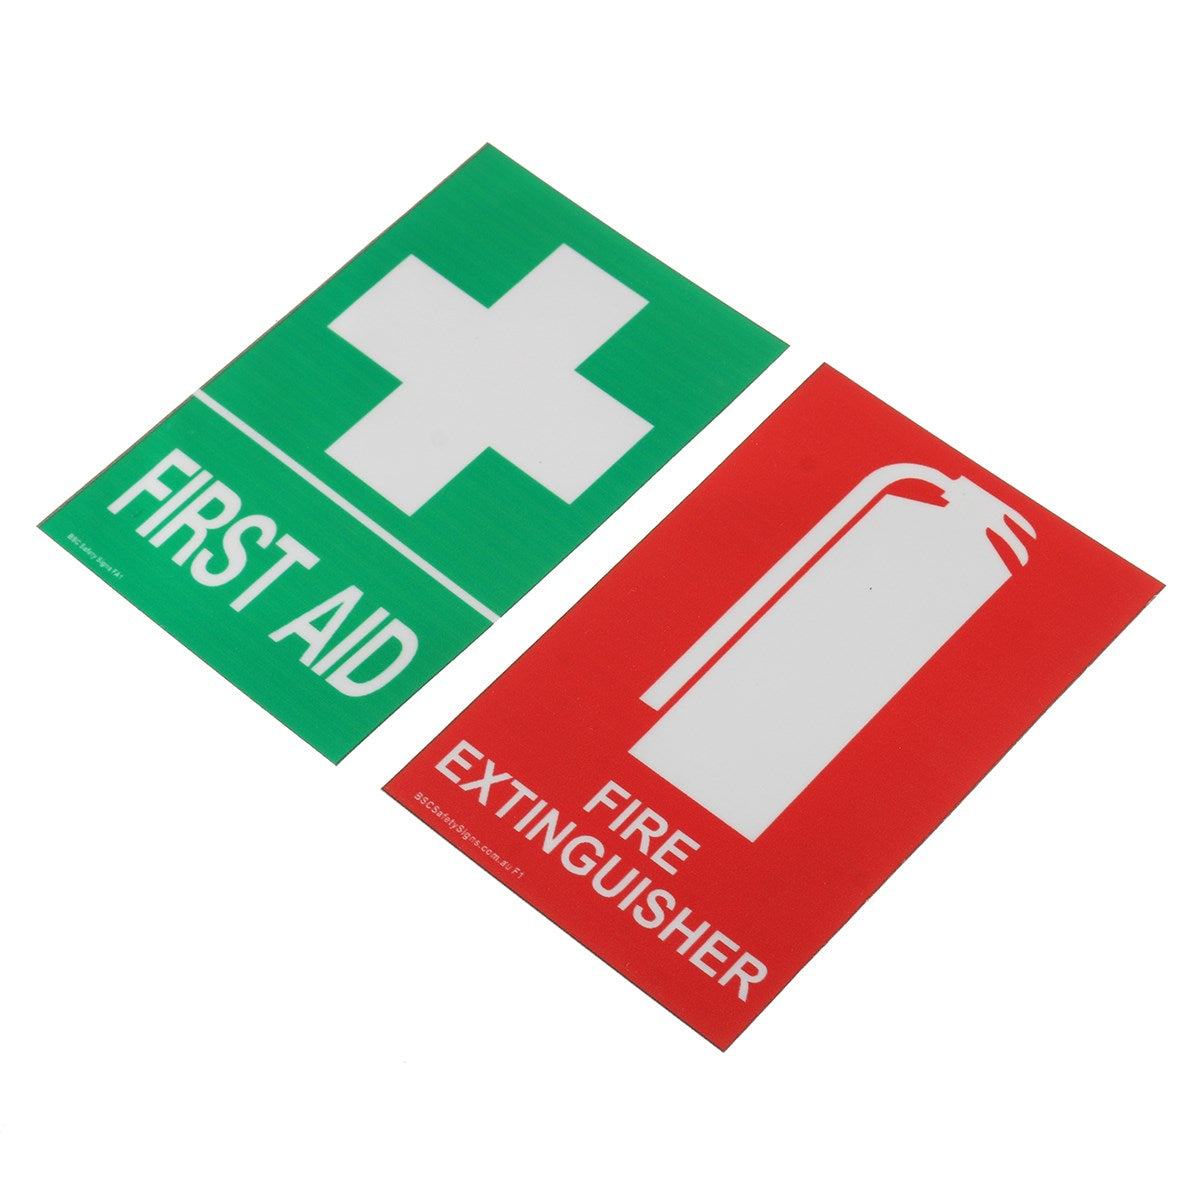 100x66mm first aid and fire extinguisher PVC Sticker Sign Decal Set OHS WH for outdoor Safety and Survival emergency urgent